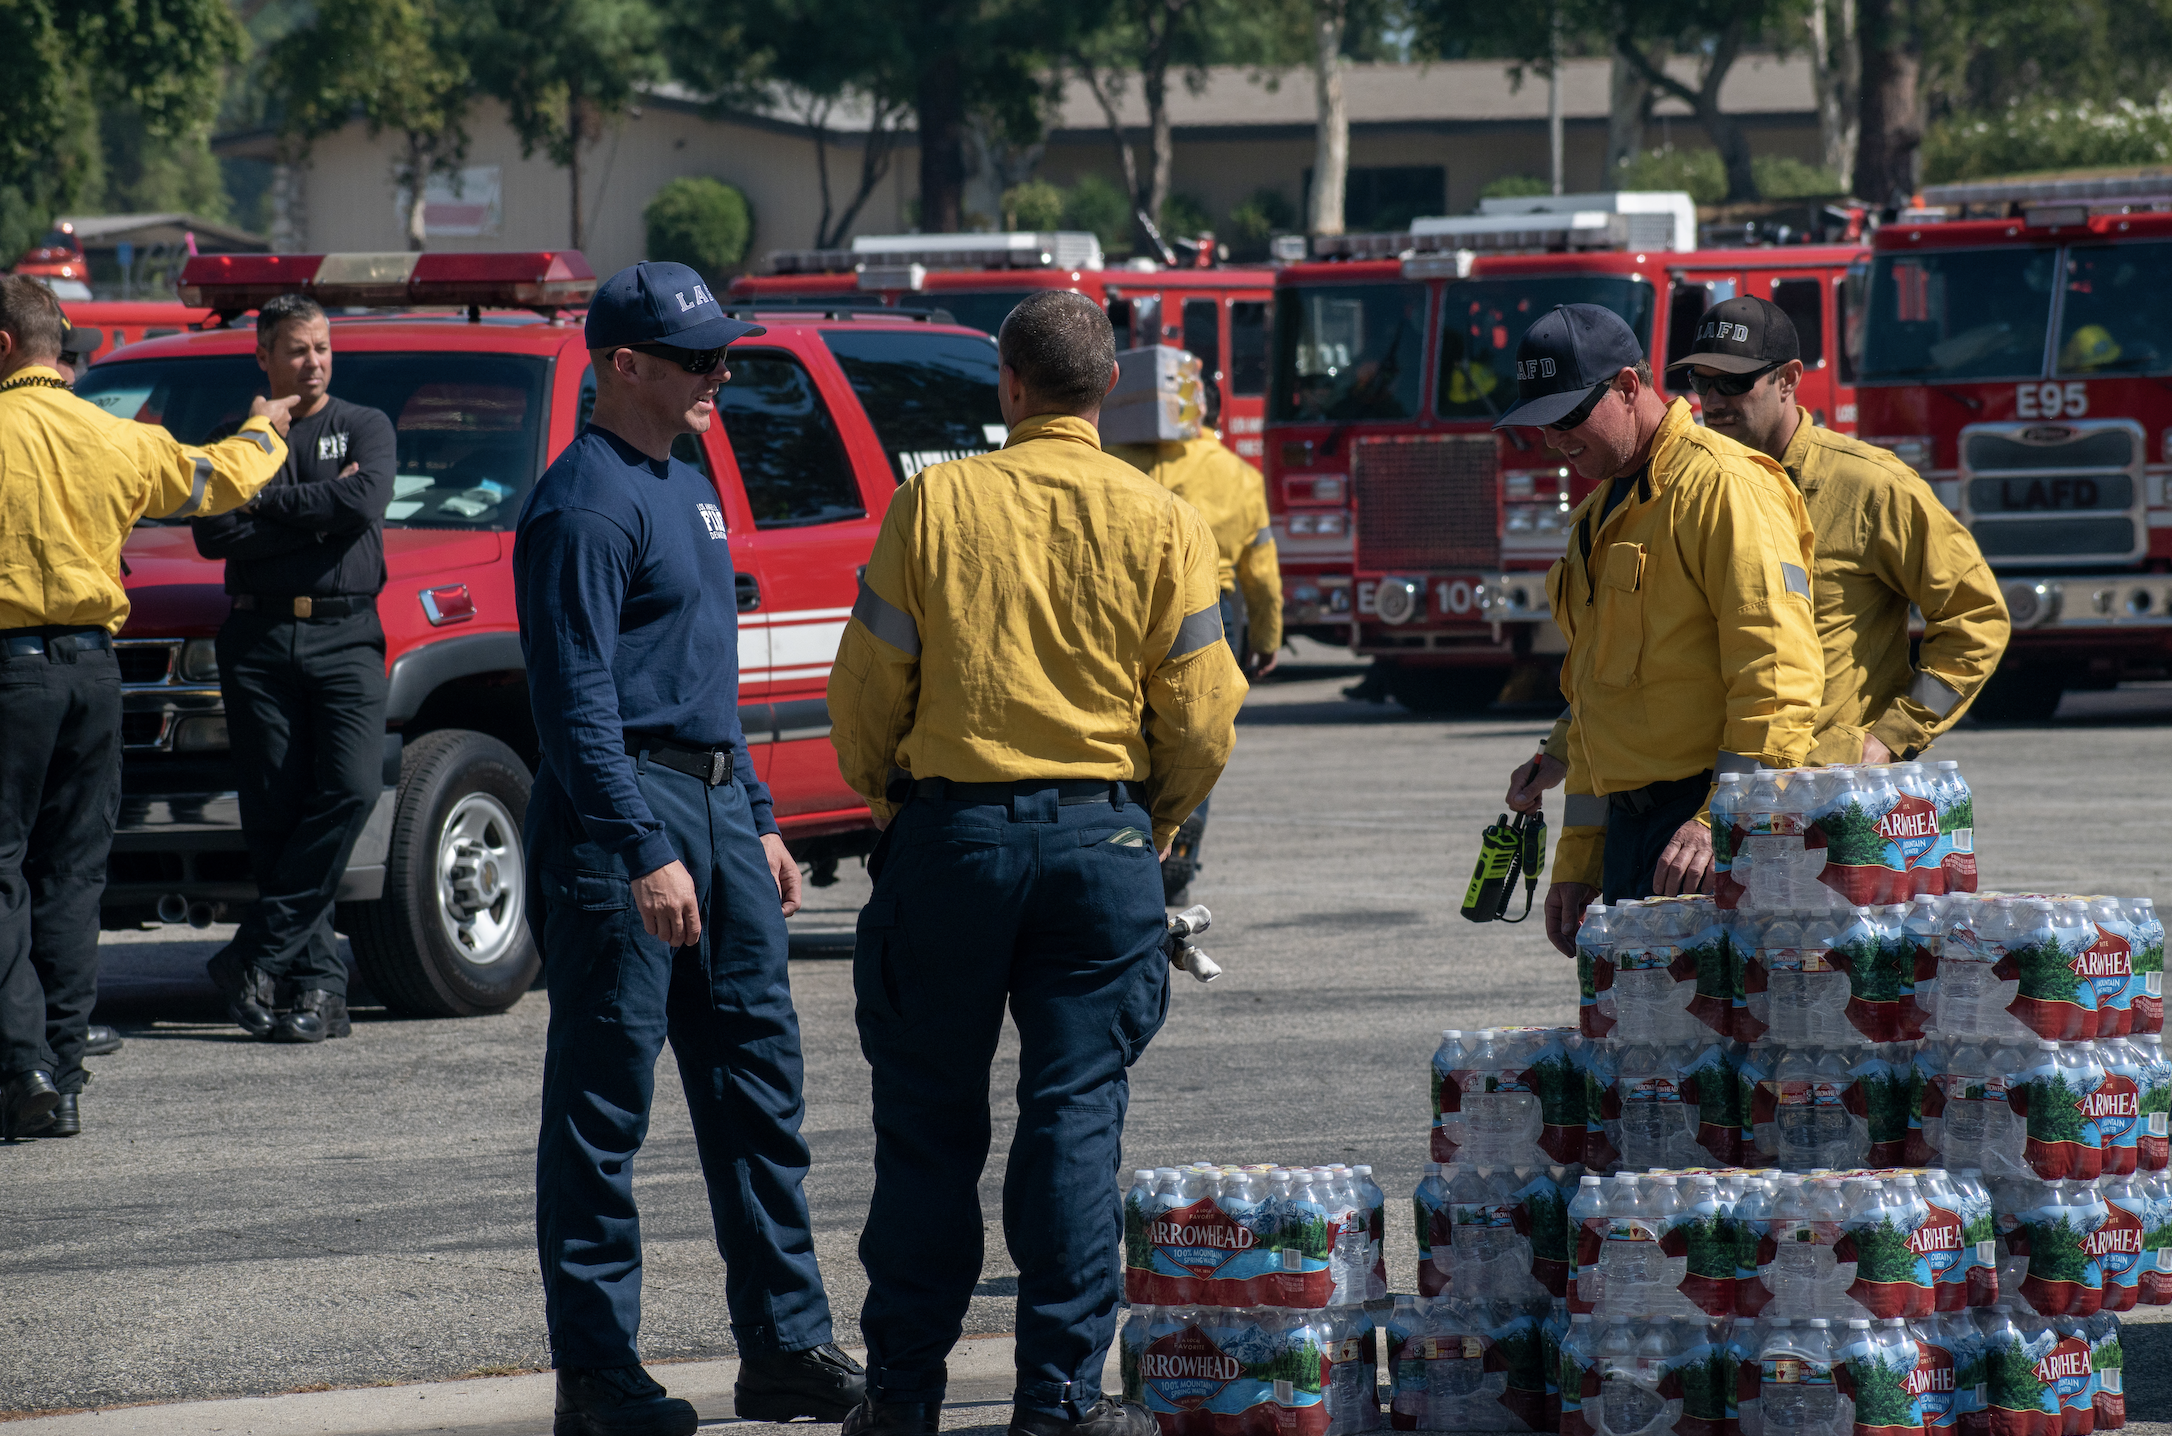 Los Angeles and Riverside Fire Department officials gather with food, water and other resources before heading into the Saddleridge fire on Friday, Oct. 11, 2019 in Porter Rach, Calif. (Randy Martinez/The Corsair)